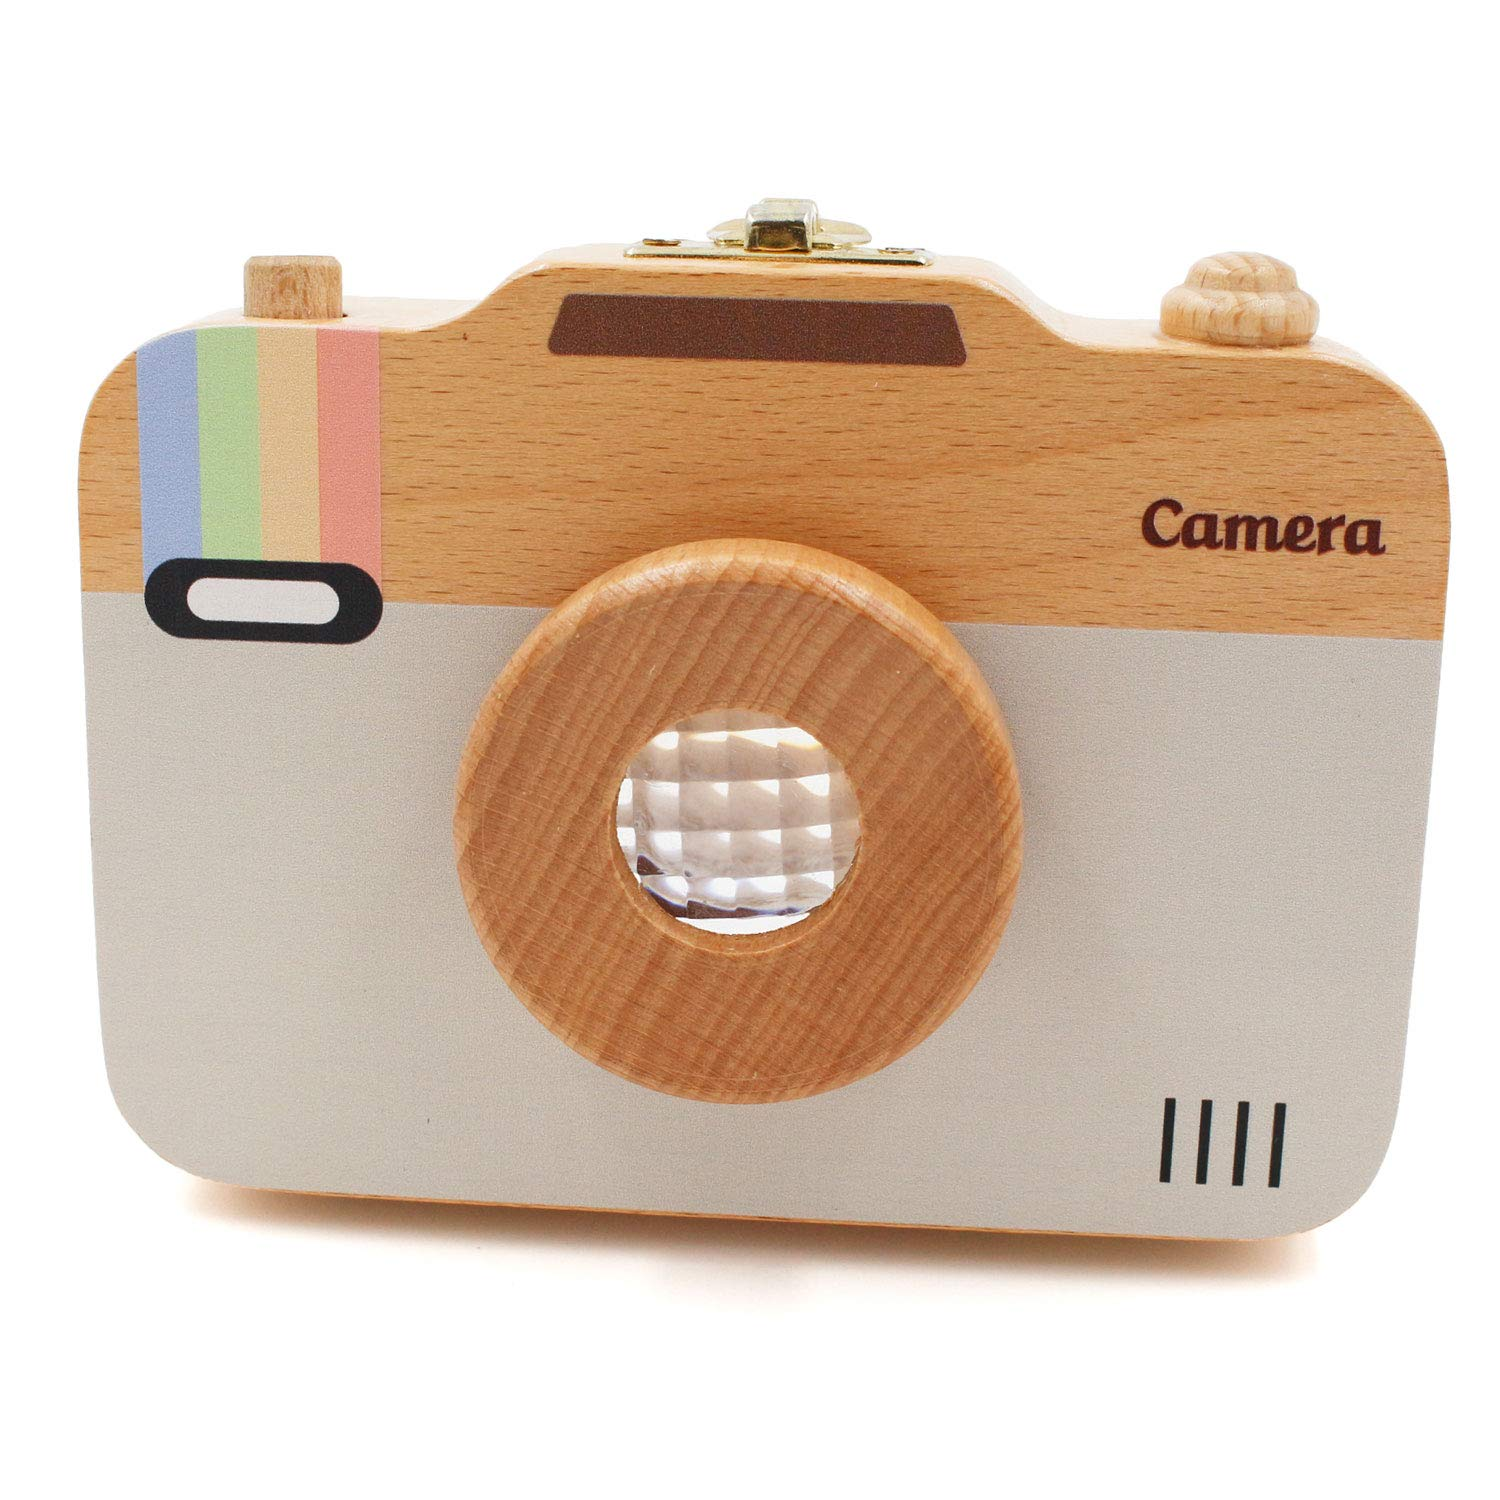 YOCEAN Camera Style Baby Tooth Box,Tooth Fairy Box Special for Kids Keepsake,Unique Baby Gifts (Beige)